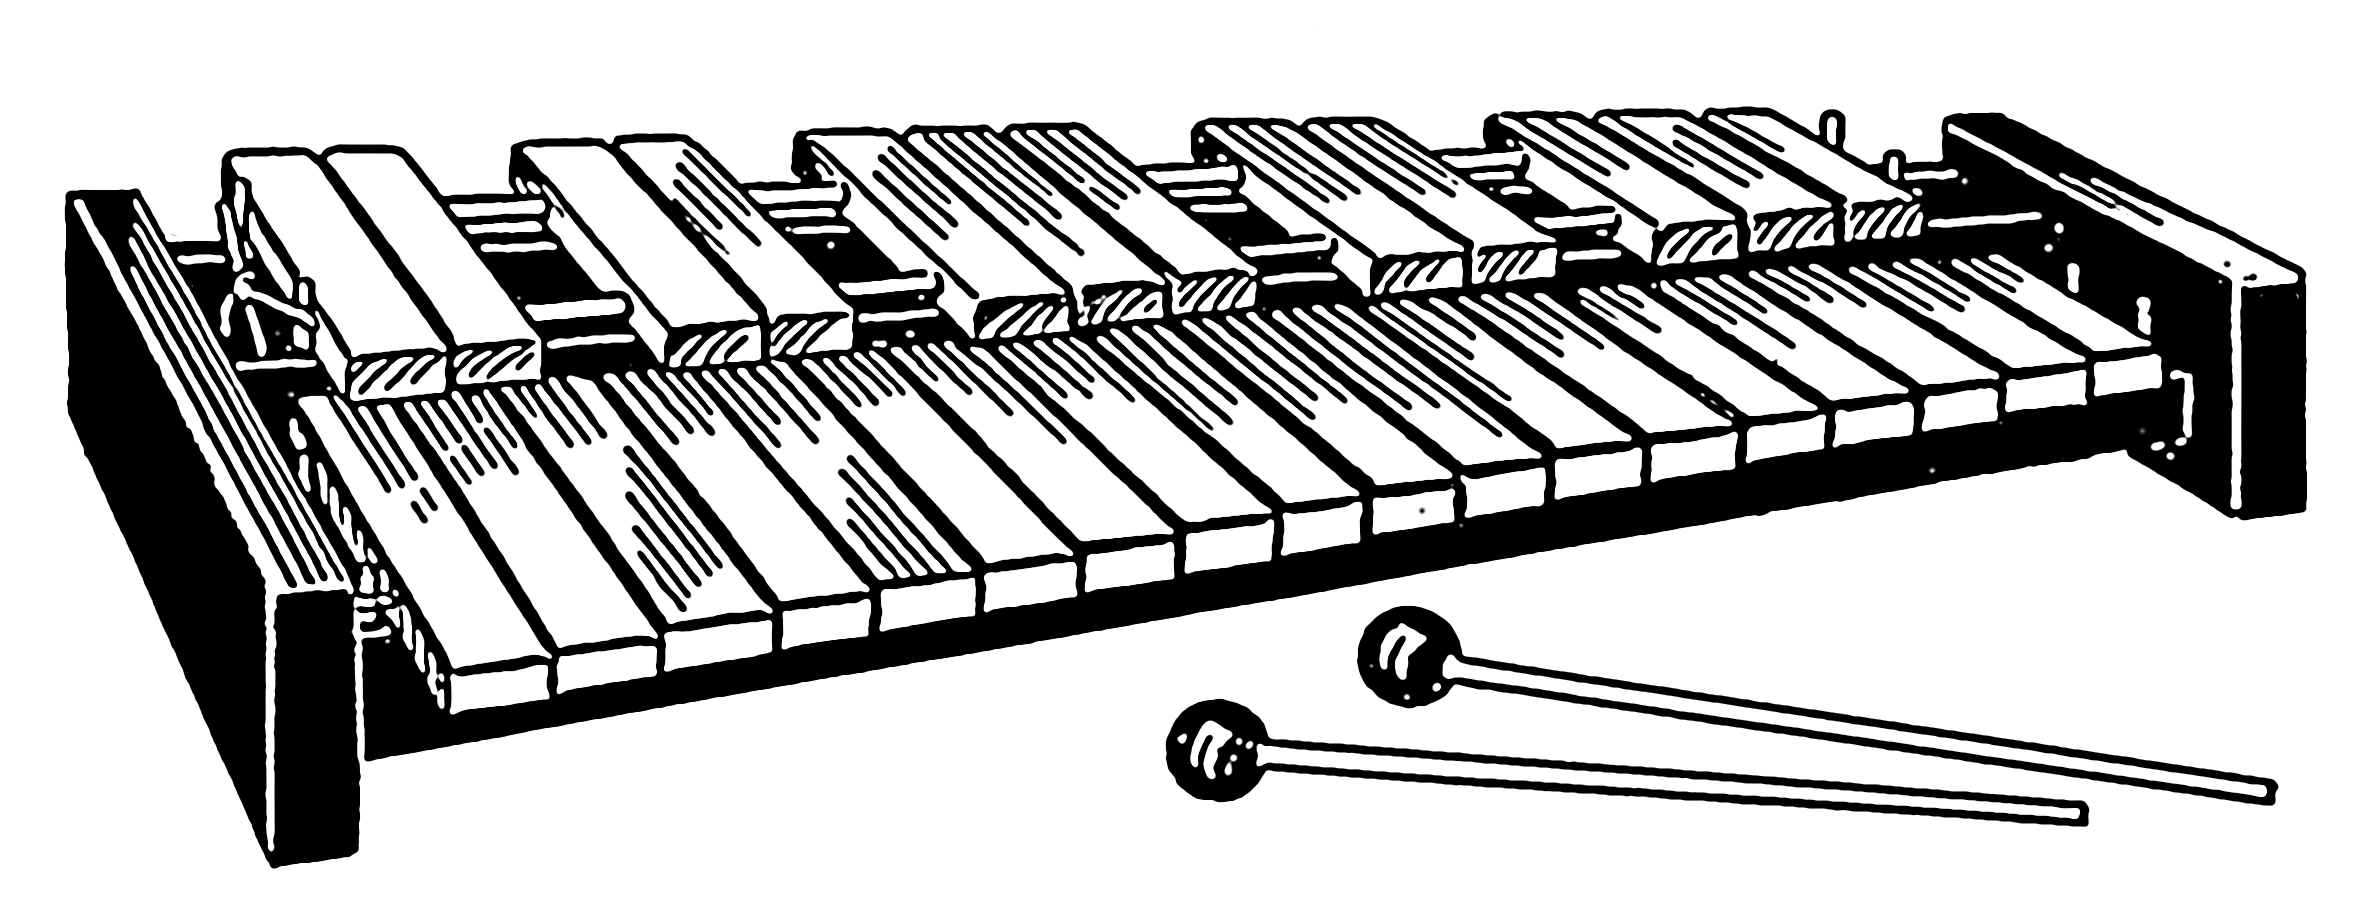 Line Art Xylophone : File xylophone psf wikimedia commons